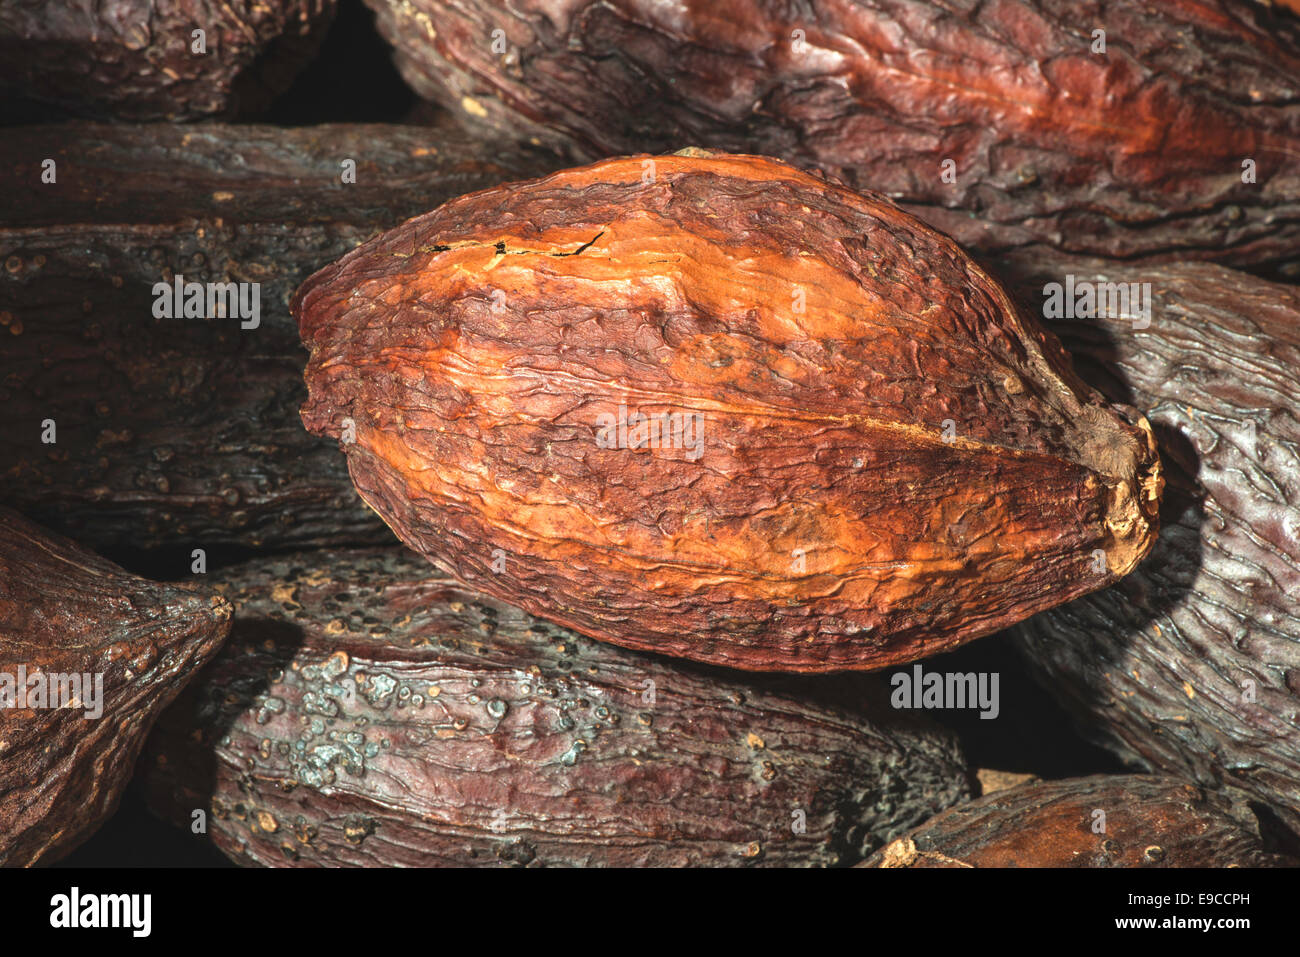 Cocoa pods and bonbons - Stock Image